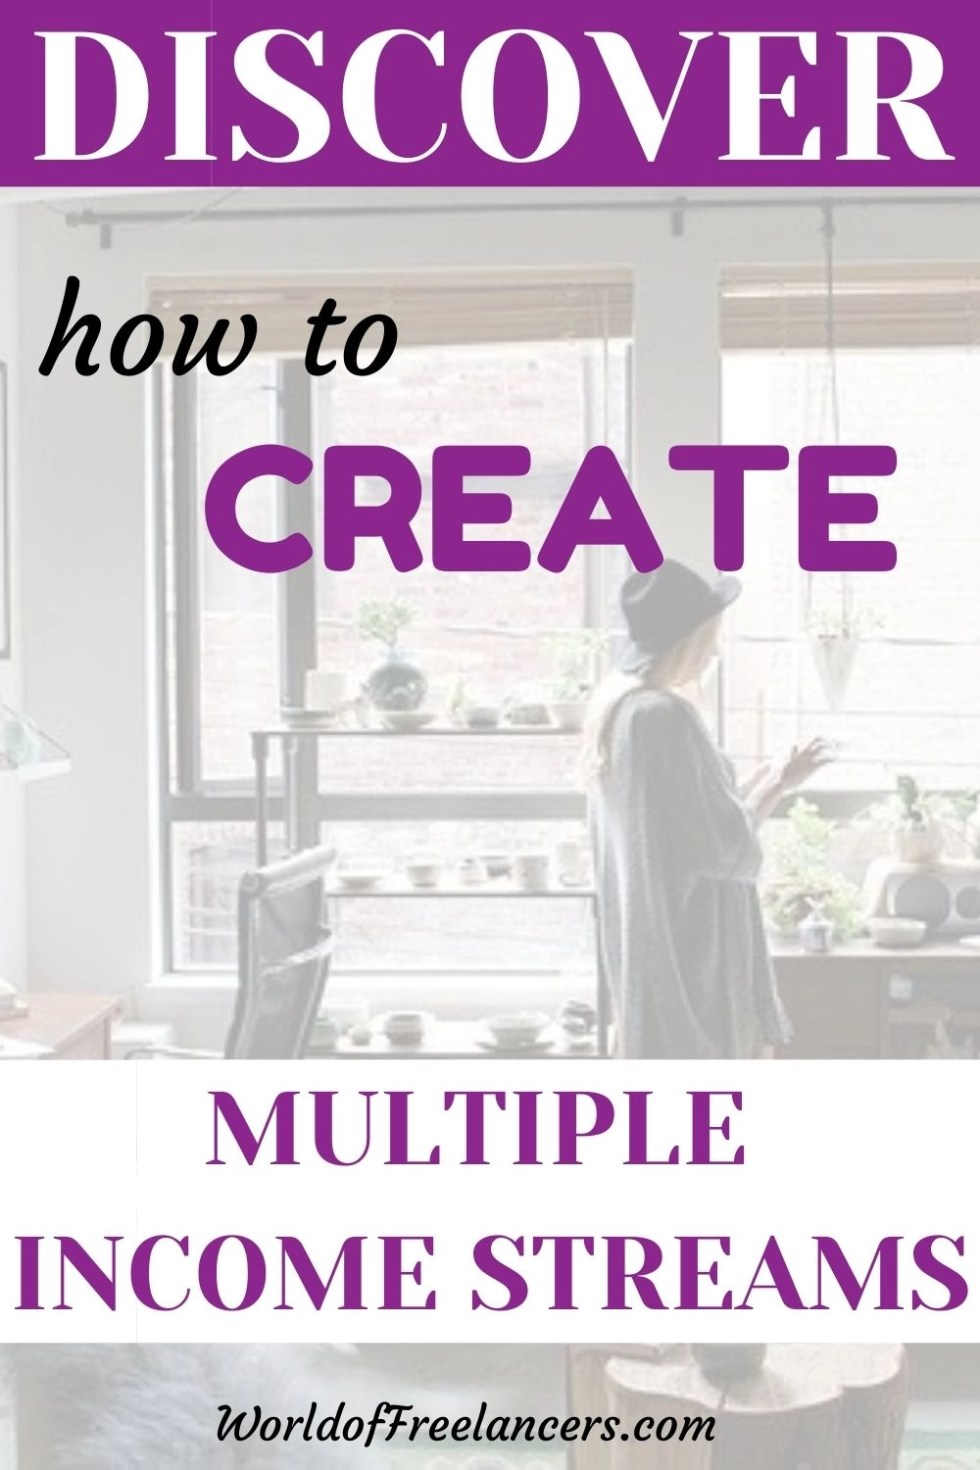 Discover how to create multiple income streams